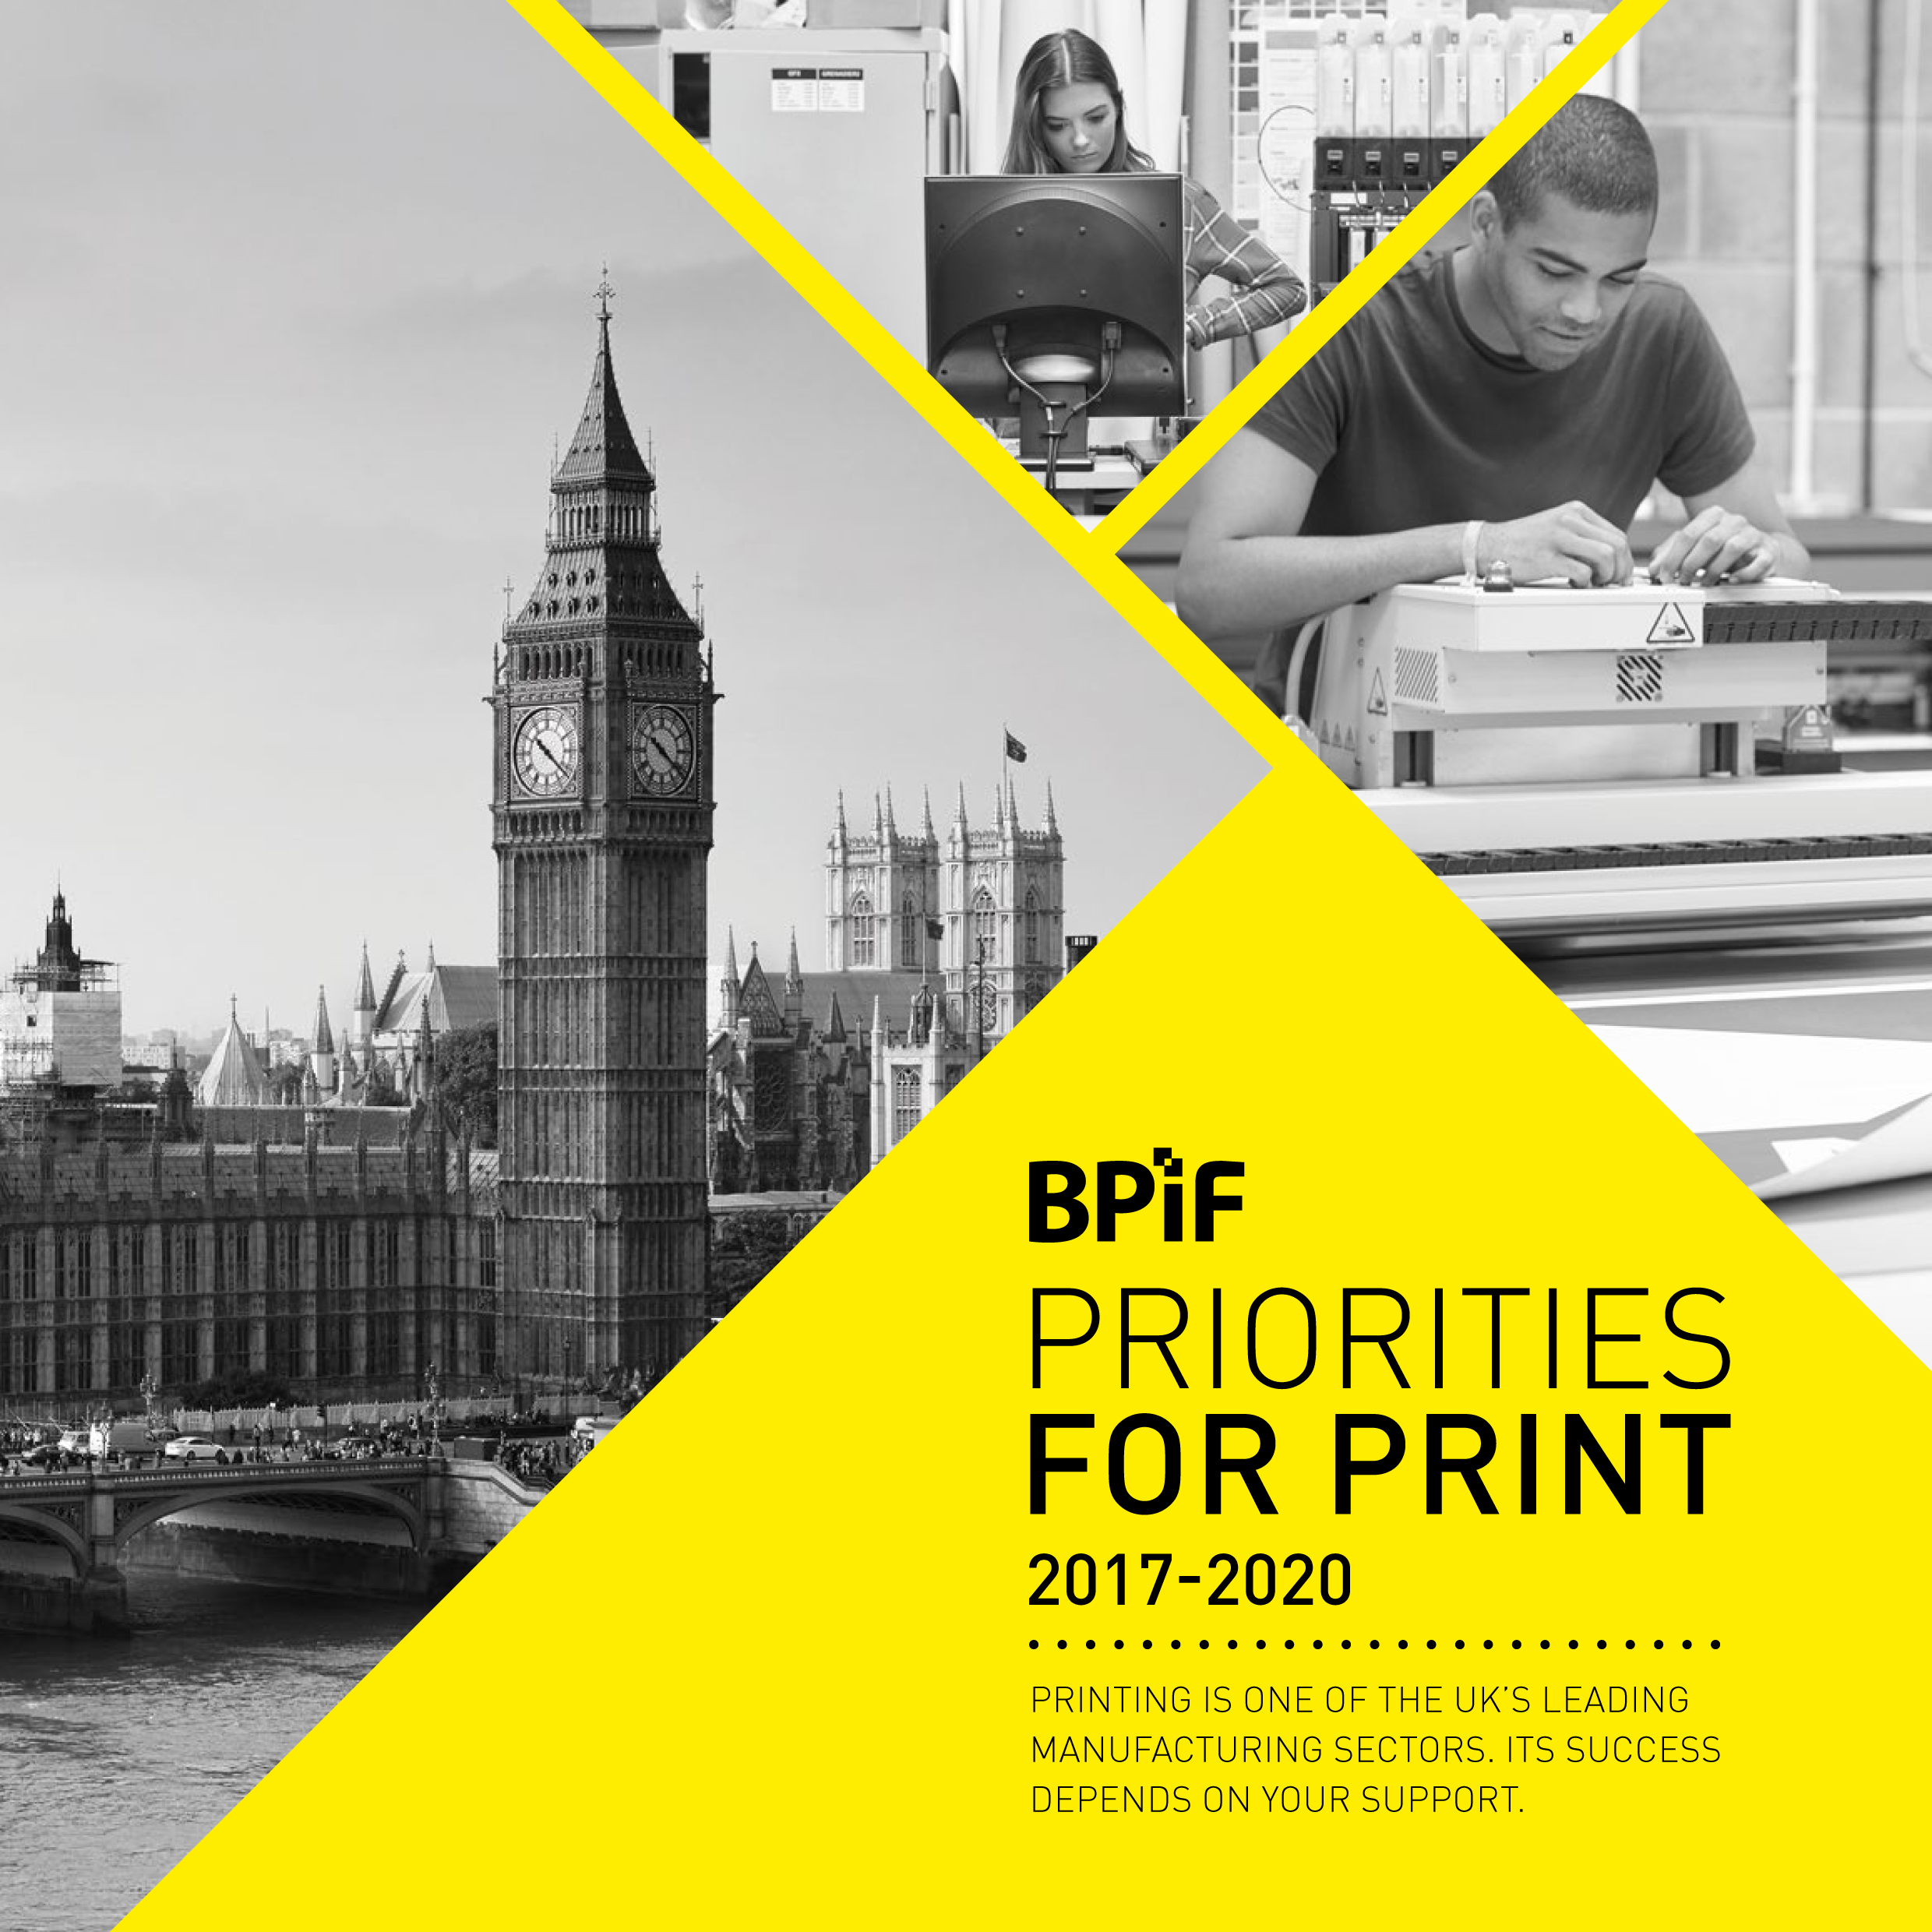 Priorities for Print 2017 - 2020